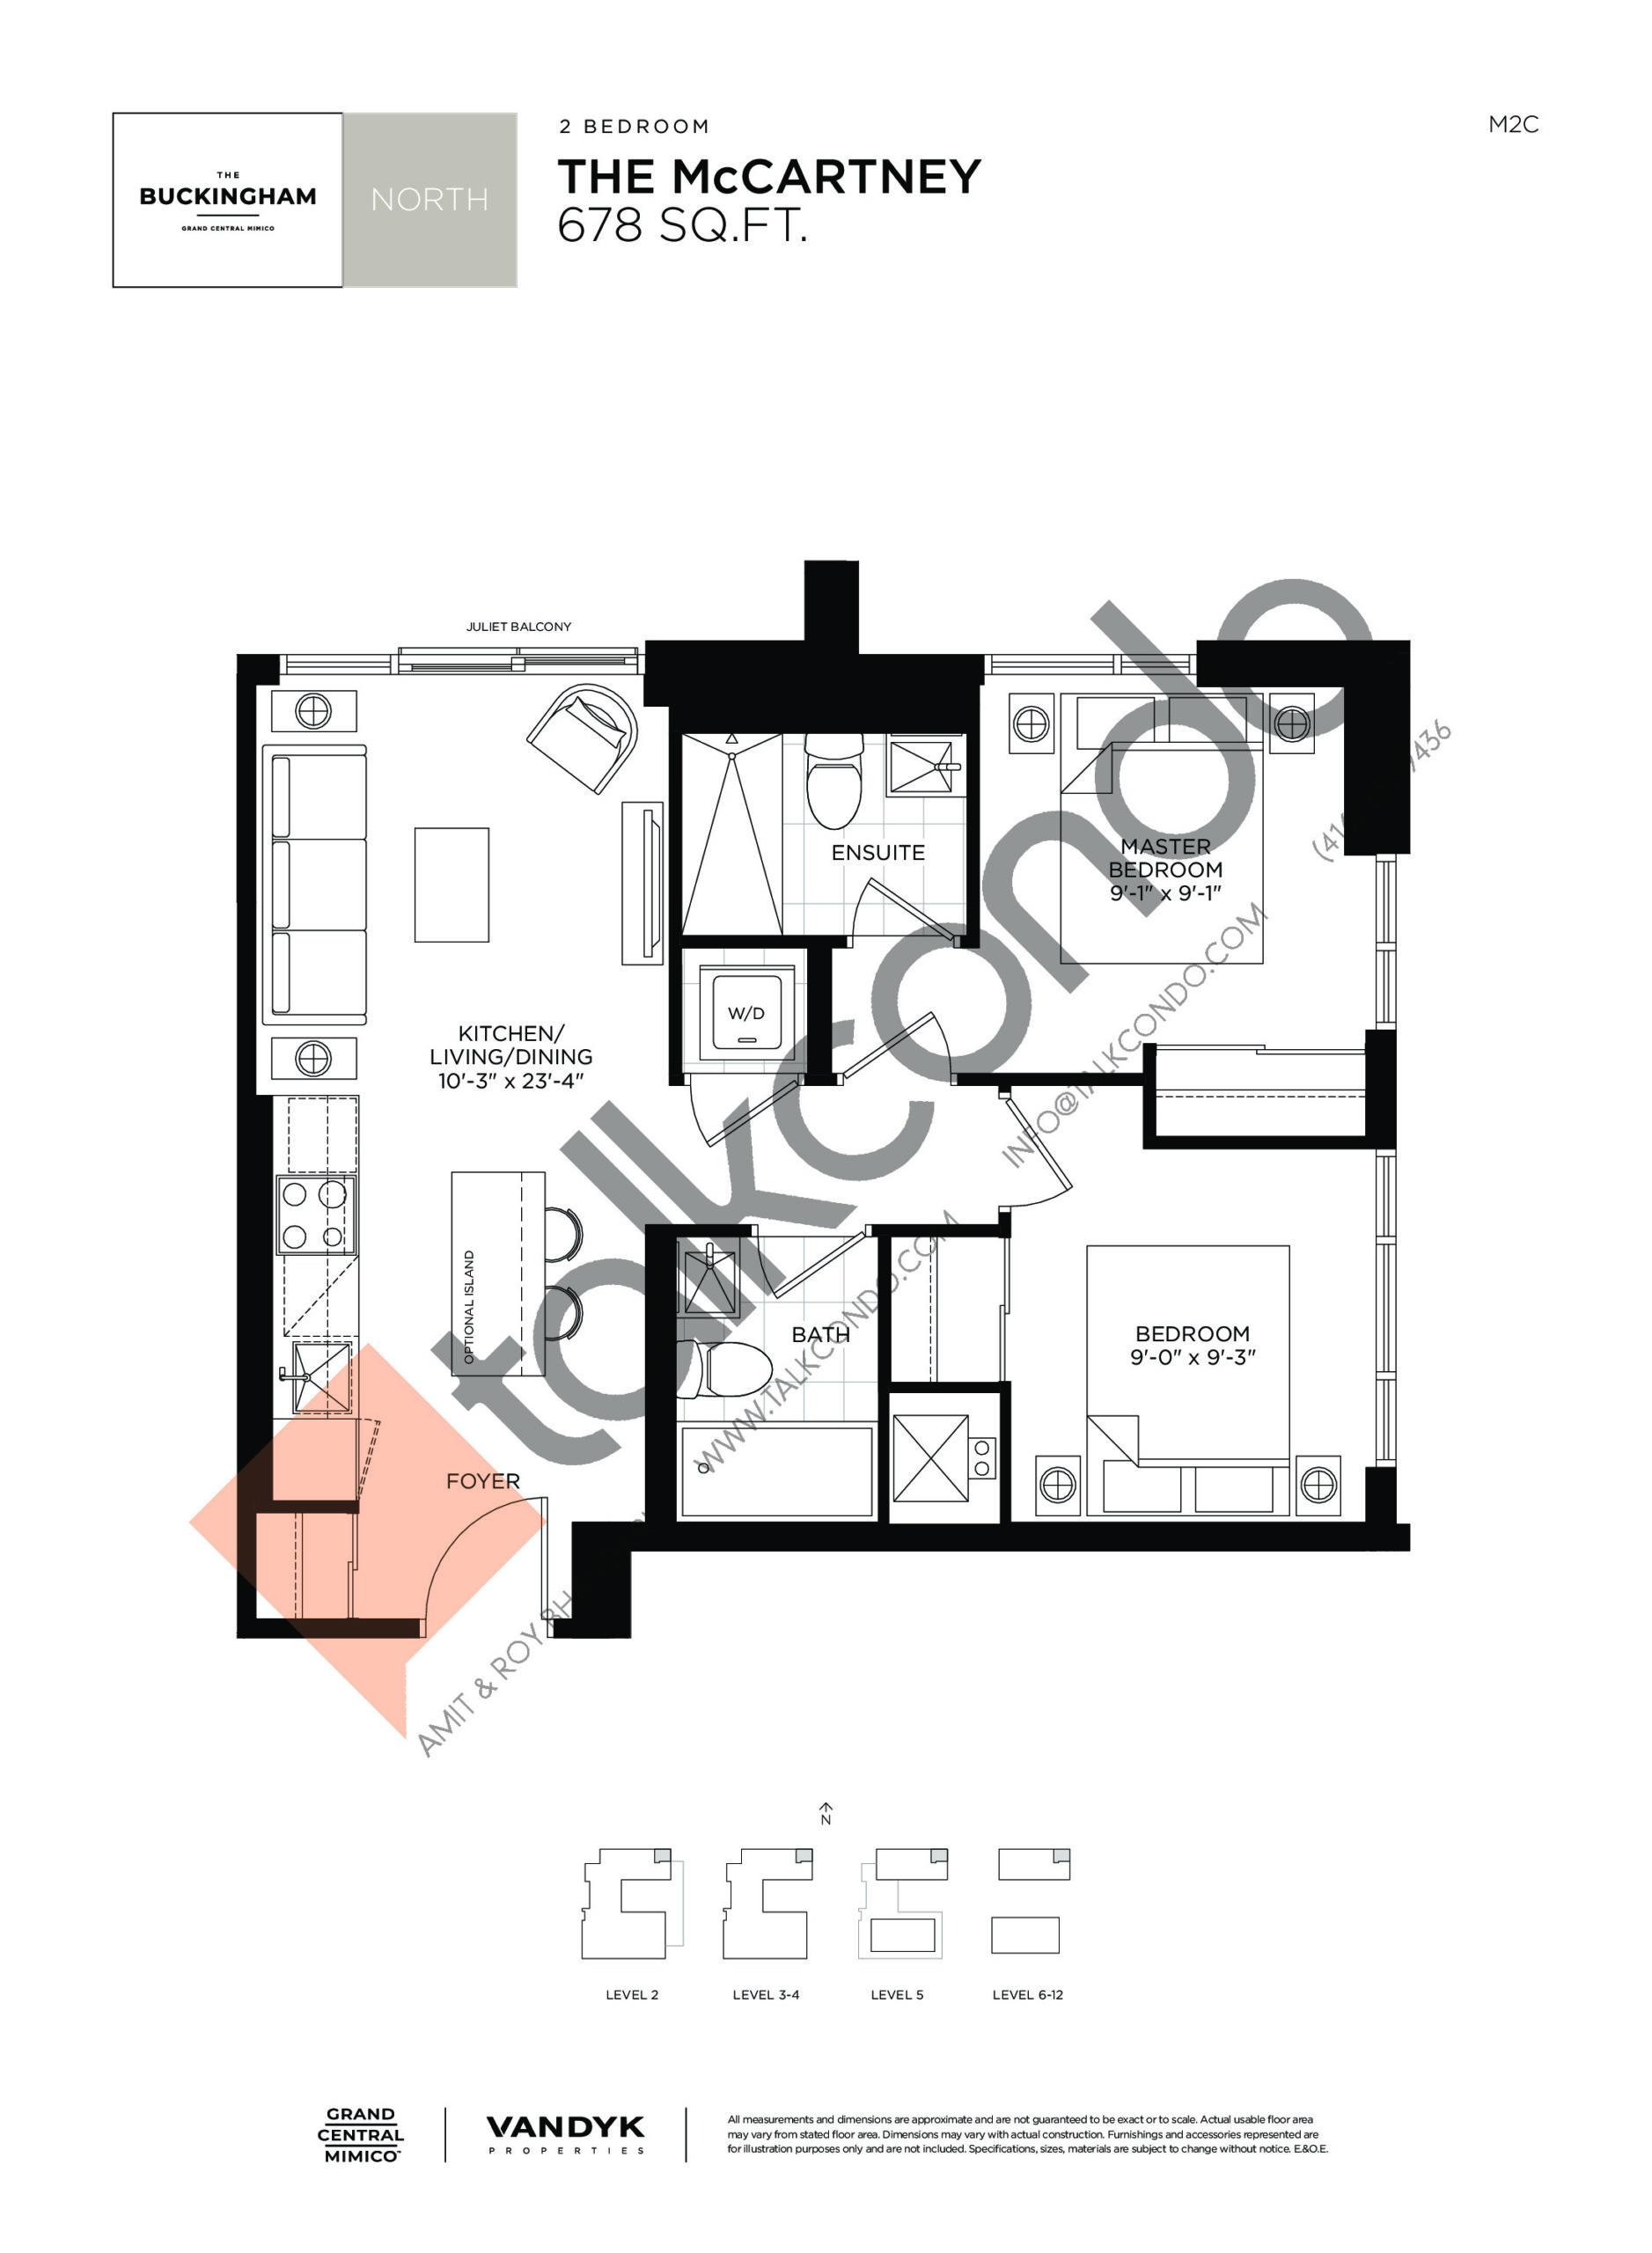 The McCartney Floor Plan at Grand Central Mimico Condos - 678 sq.ft